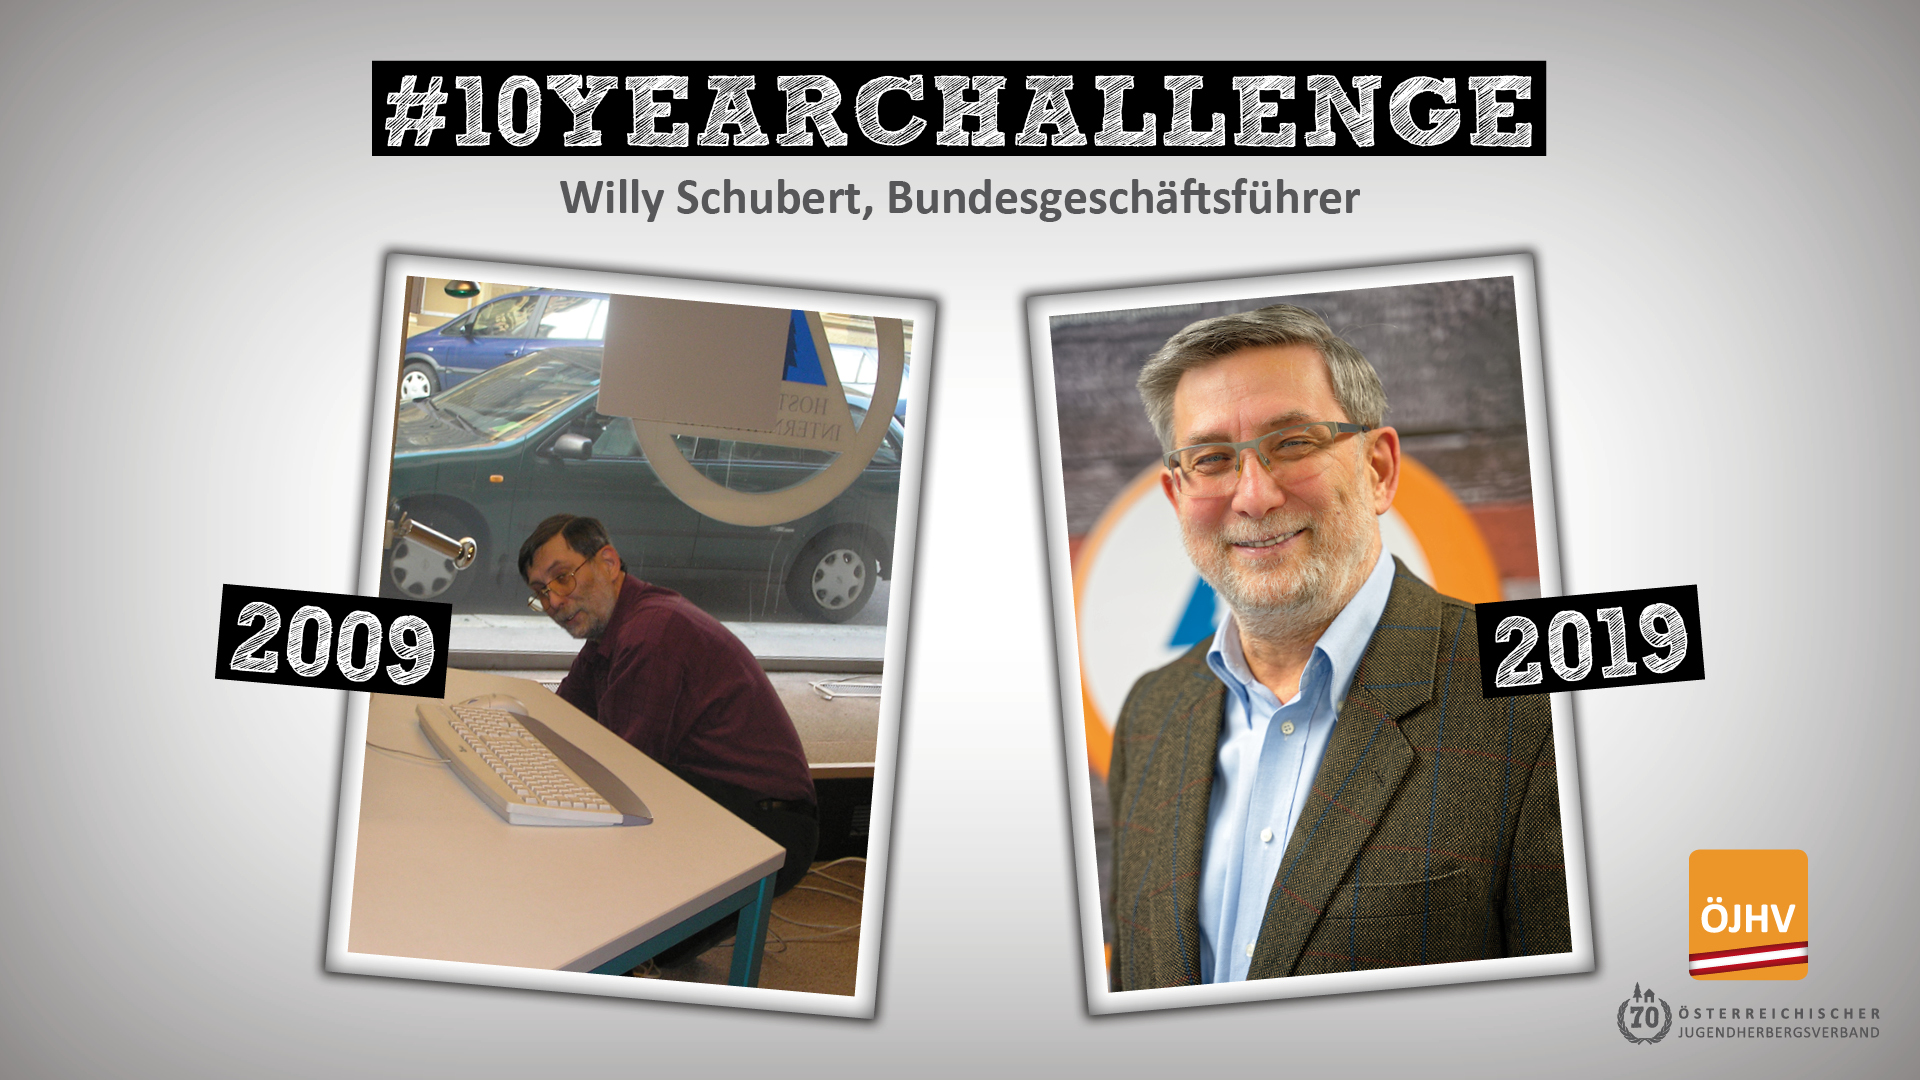 Jugendherbergsverband #10YearChallenge Willy Schubert